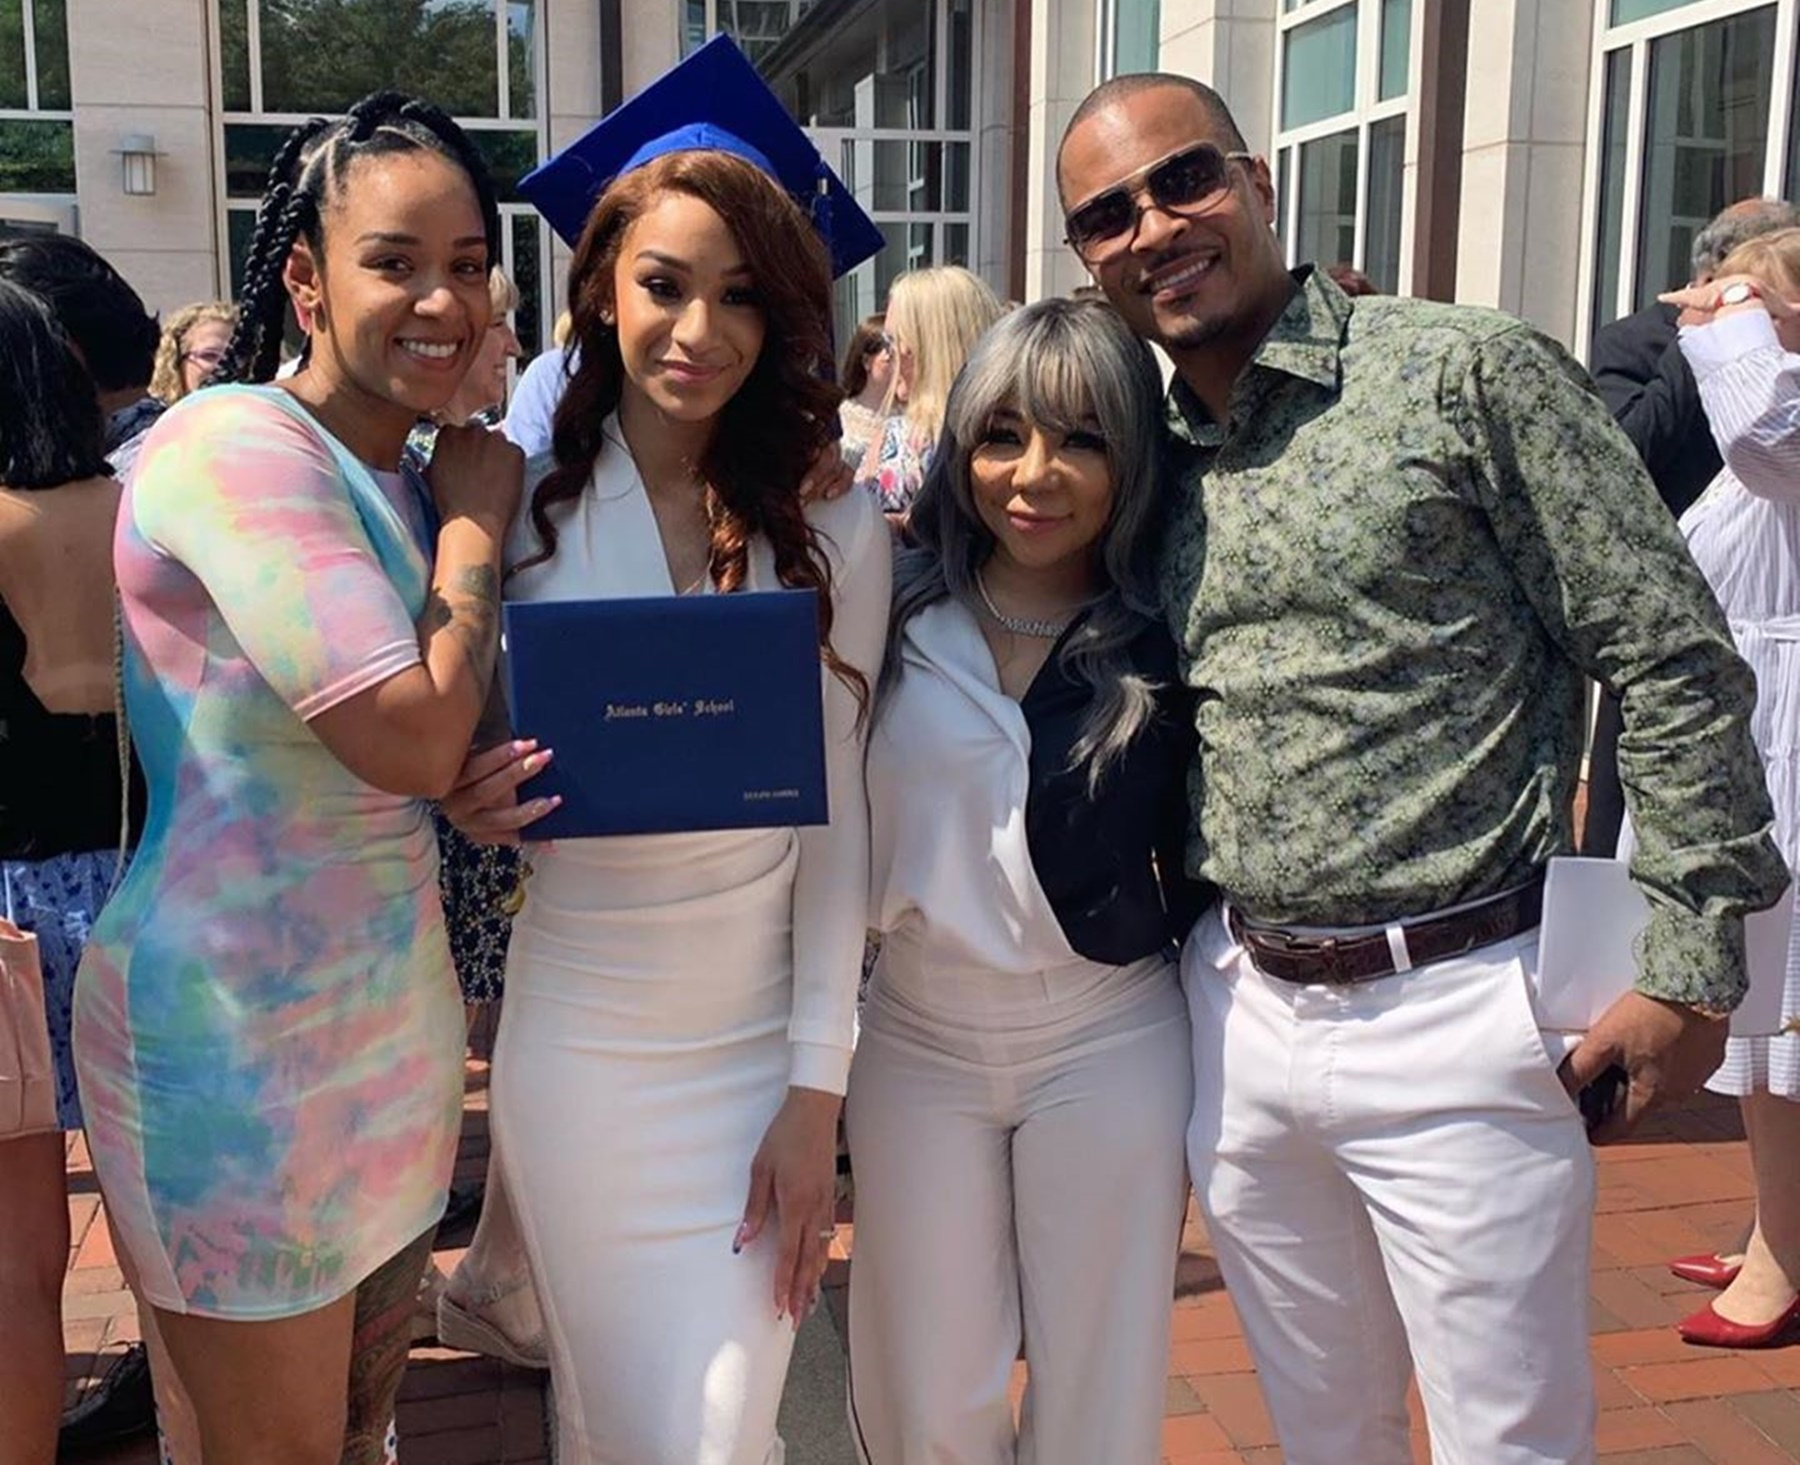 t-i-s-daughter-deyjah-looks-stunning-with-her-two-mothers-at-graduation-ceremony-check-out-why-some-tiny-harris-fans-are-blasting-the-dress-code-fashion-police-criticizing-the-pictures